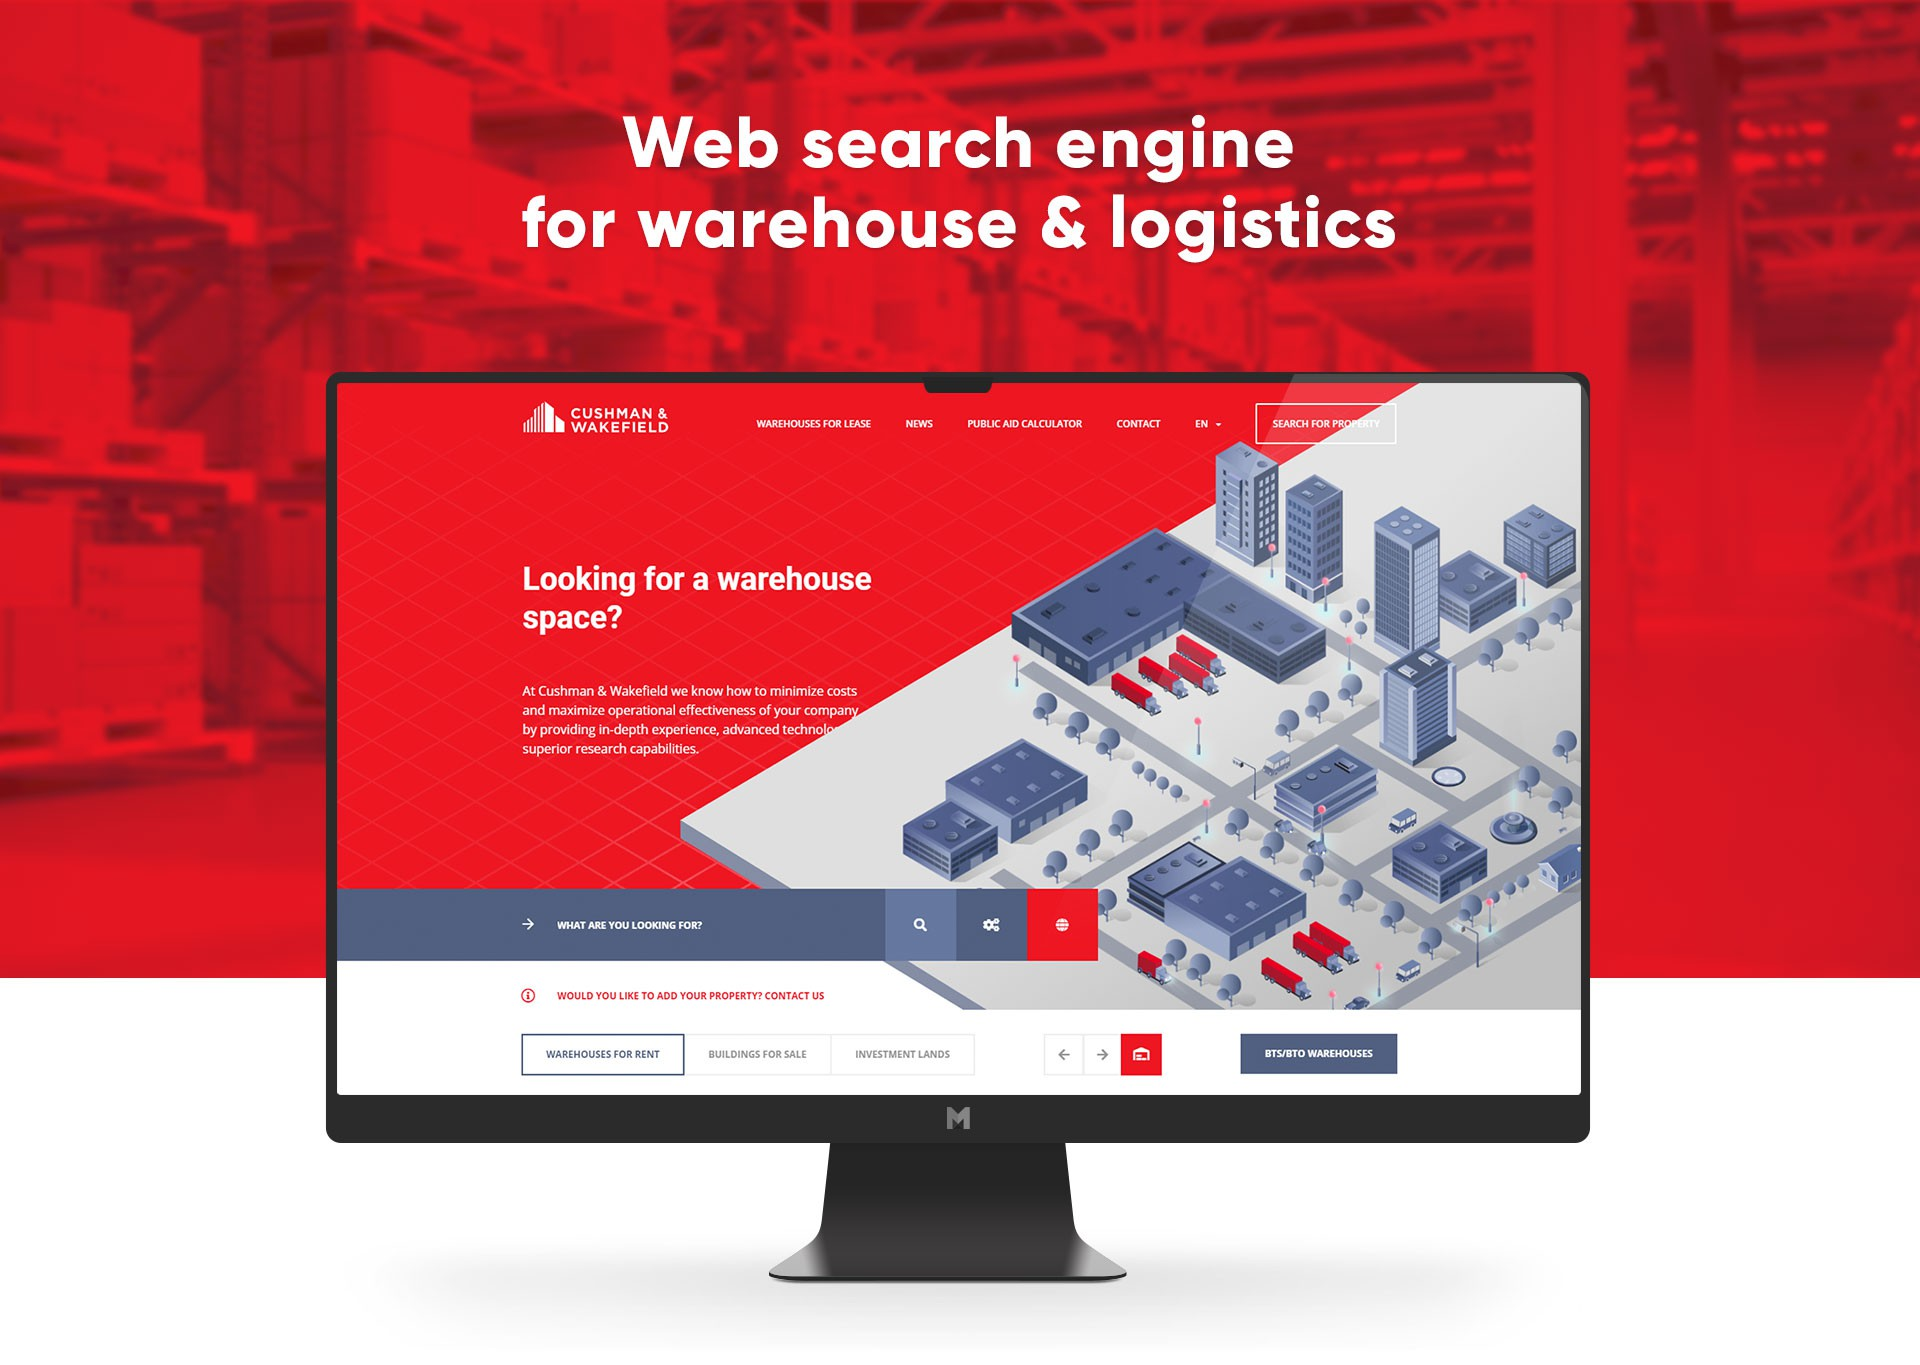 Web search engine for warehouse & logistics